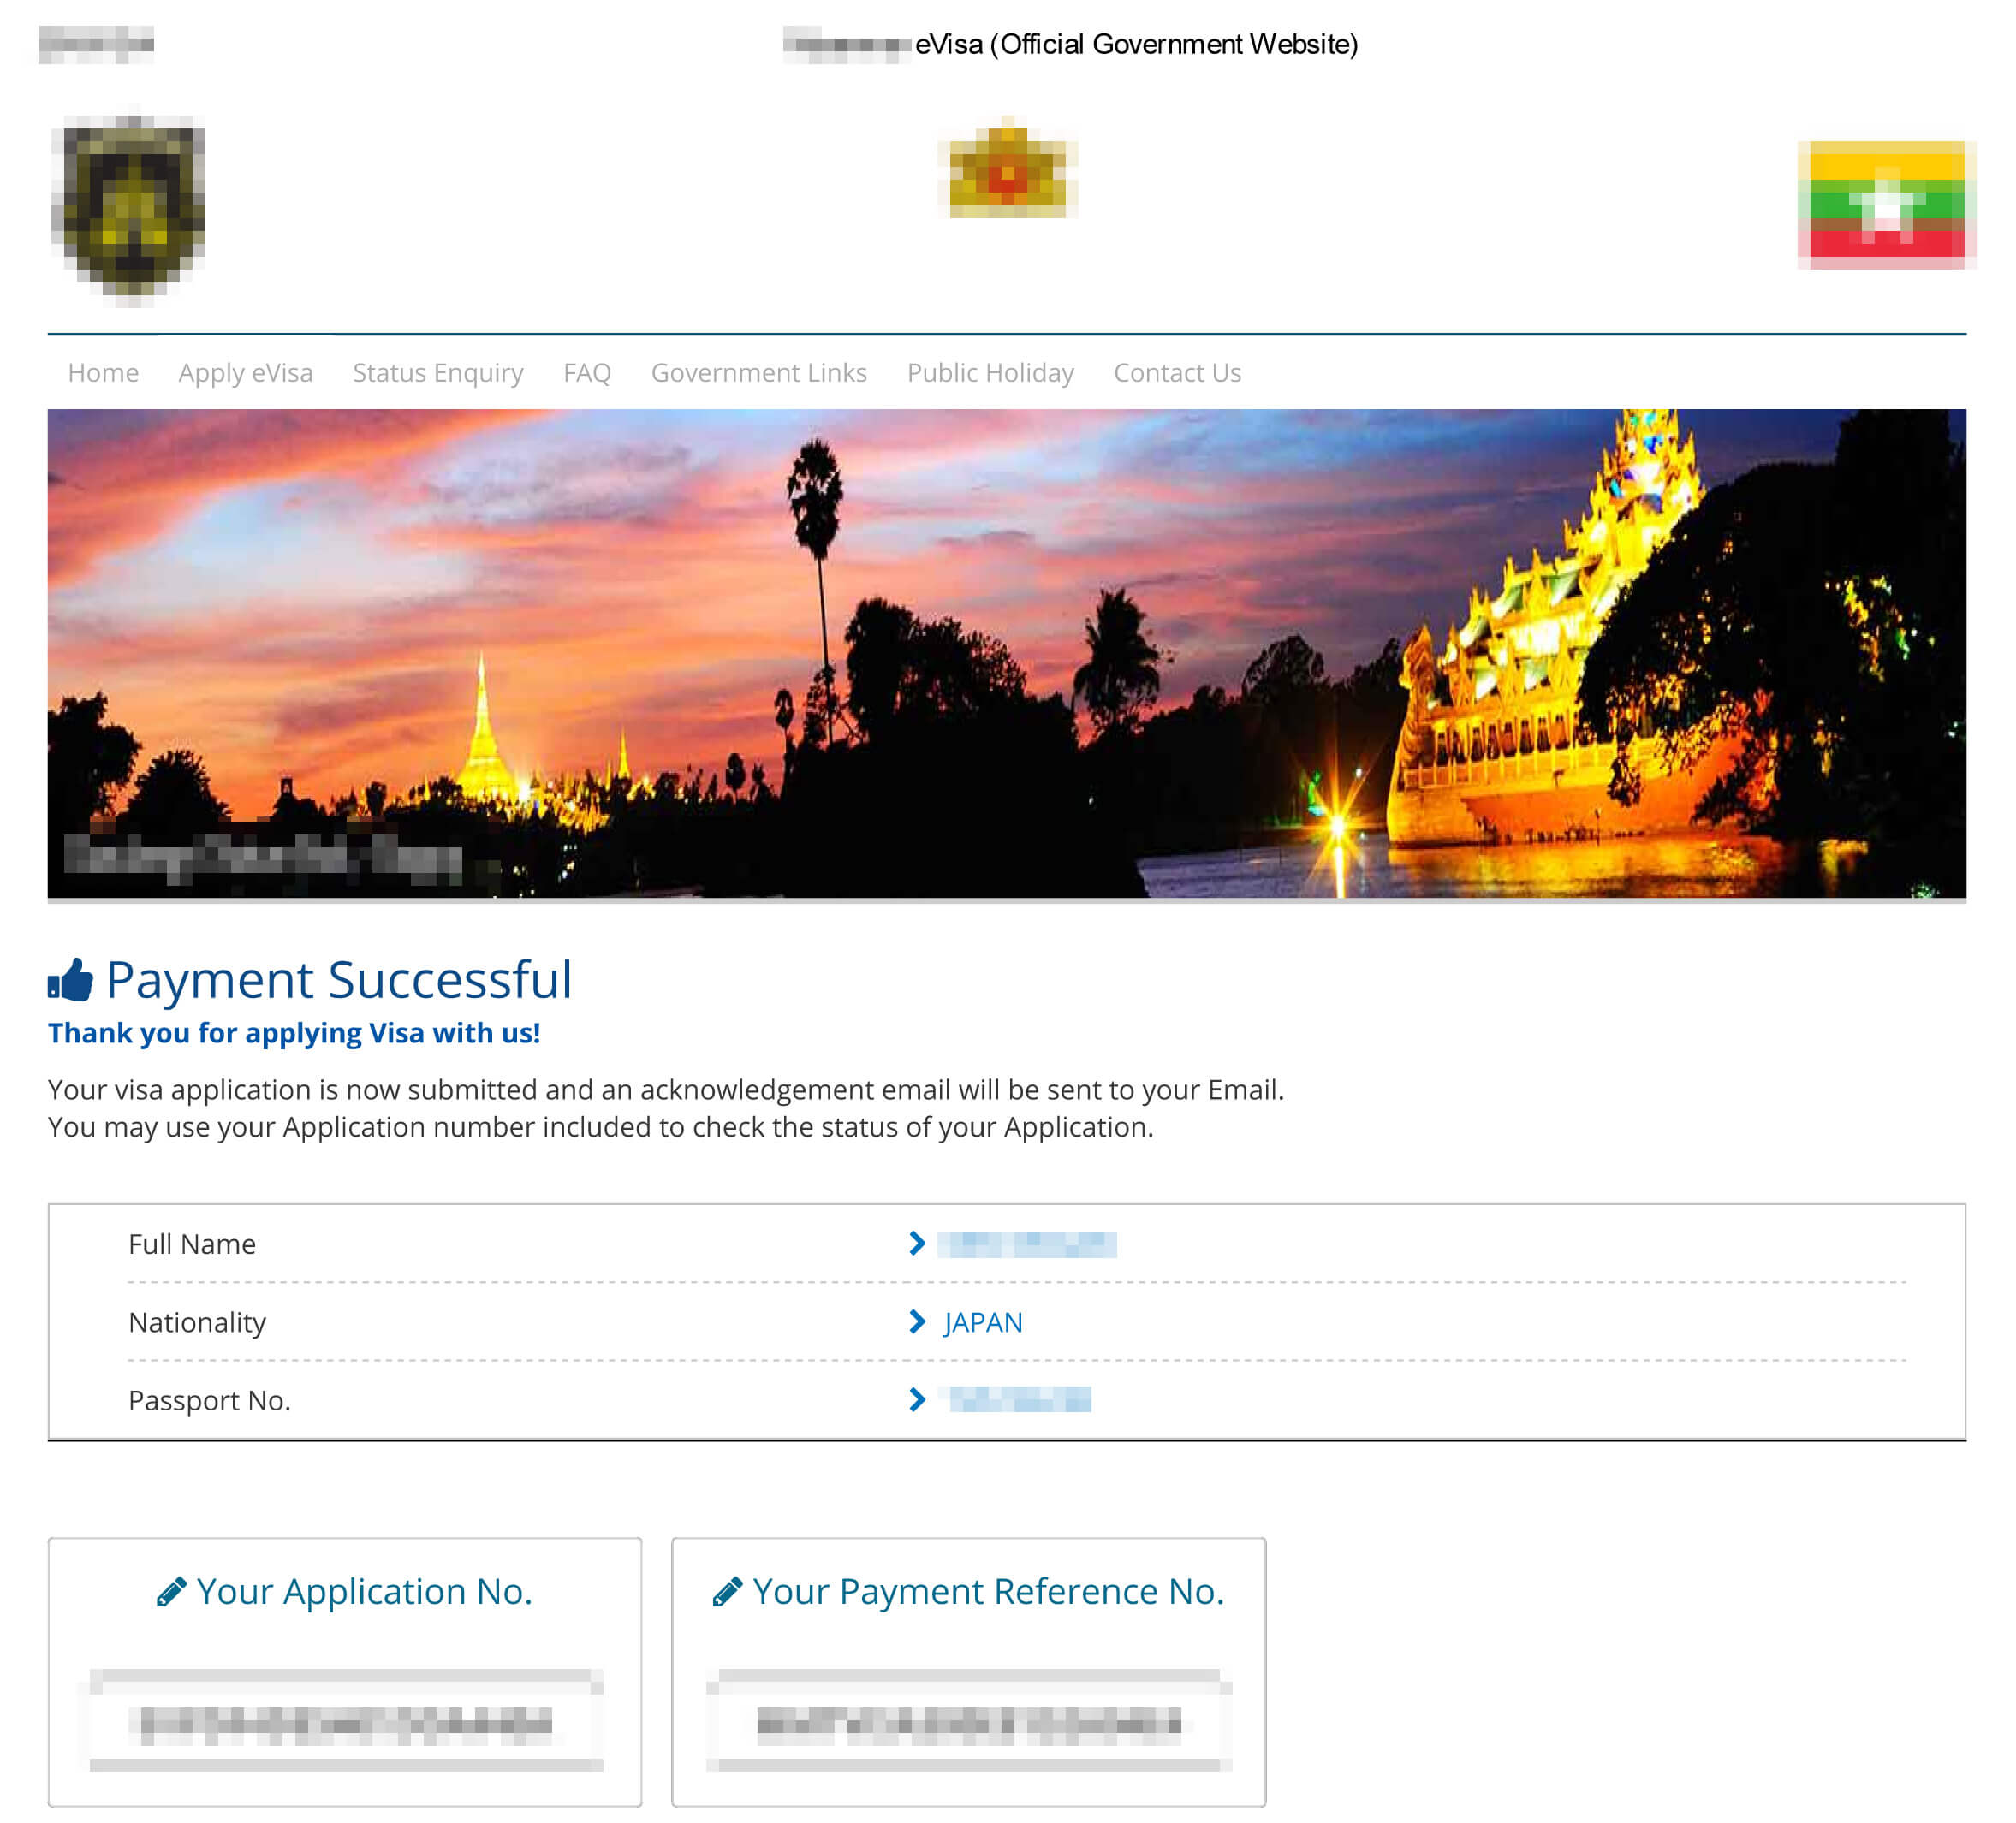 myanmar-evisa-official-government-website